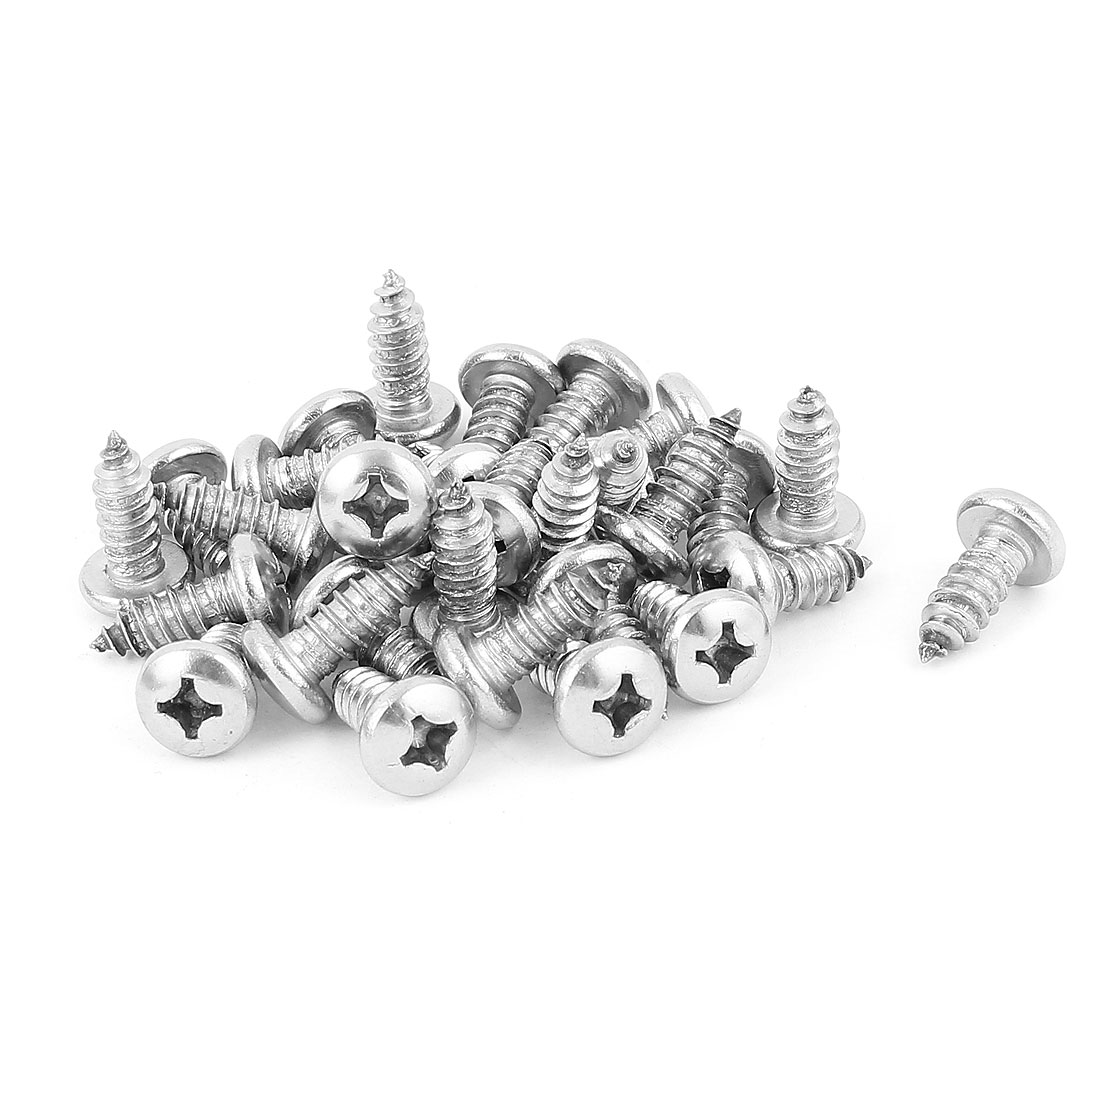 6.3mm x 20mm Stainless Steel Phillips Pan Head Self Tapping Screw Fasteners Silver Tone 30 Pcs